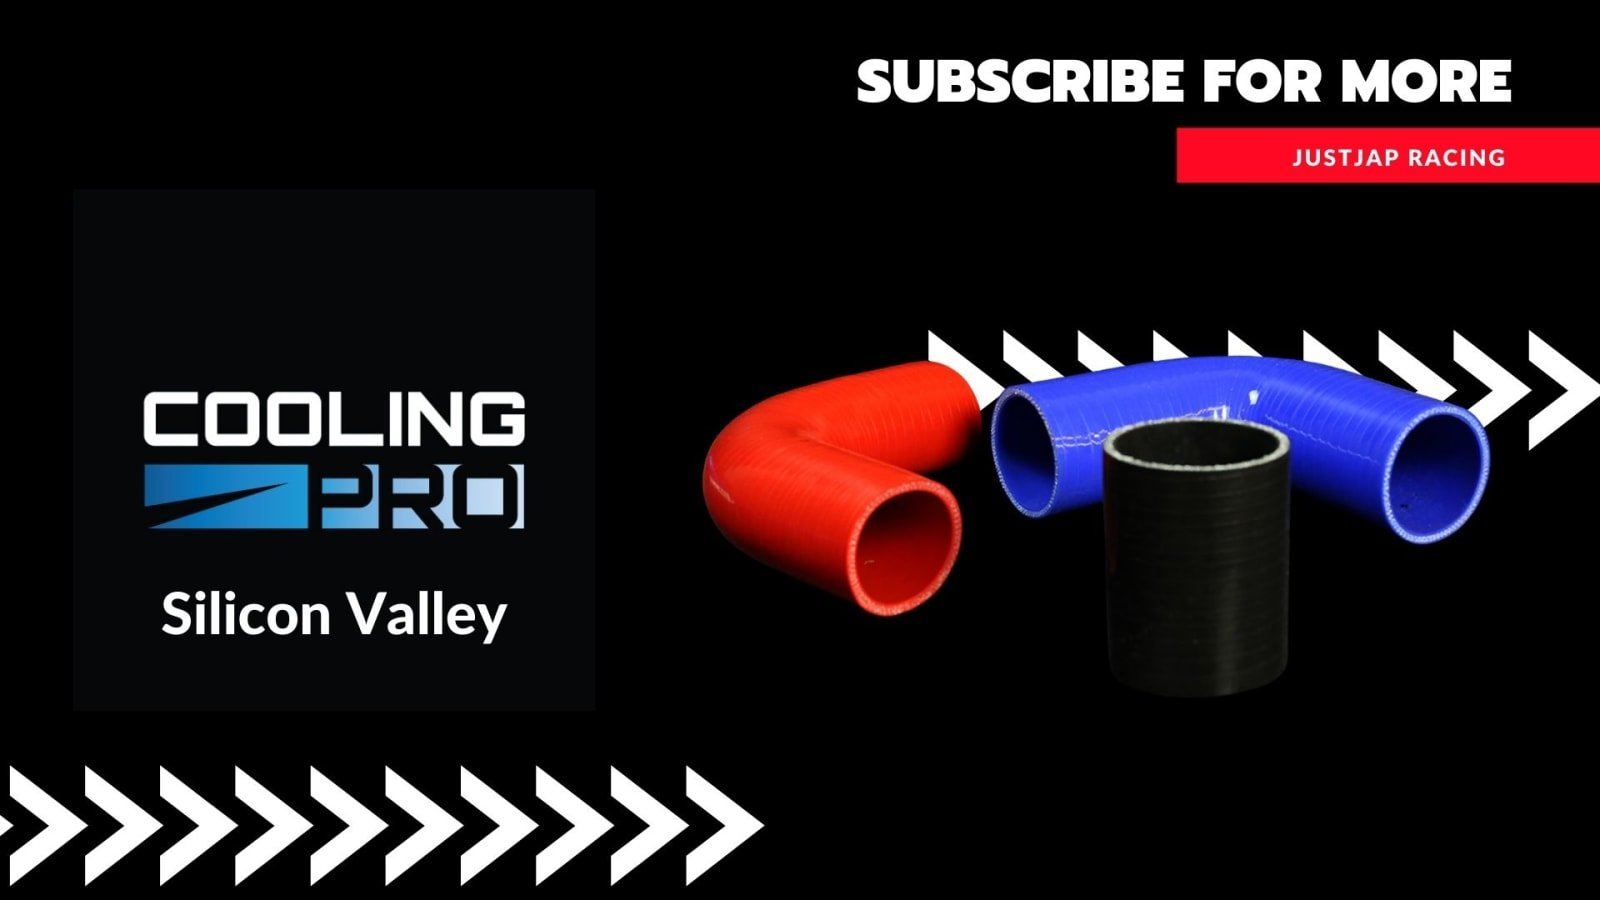 Cooling Pro Silicone 2 Inch / 51mm - 2.5 Inch / 63mm Straight Reducer Hose